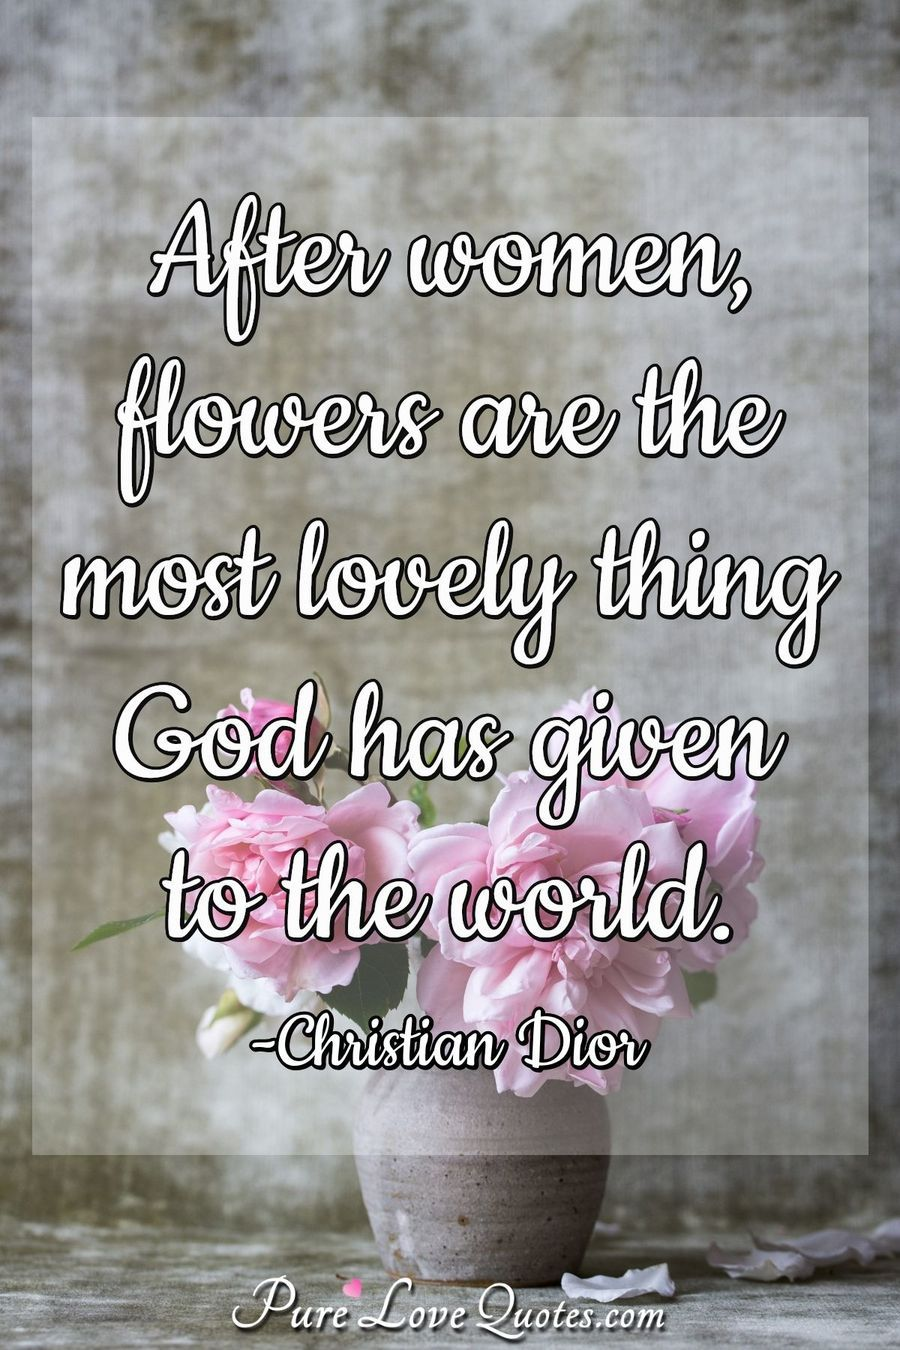 Christian Dior Quote